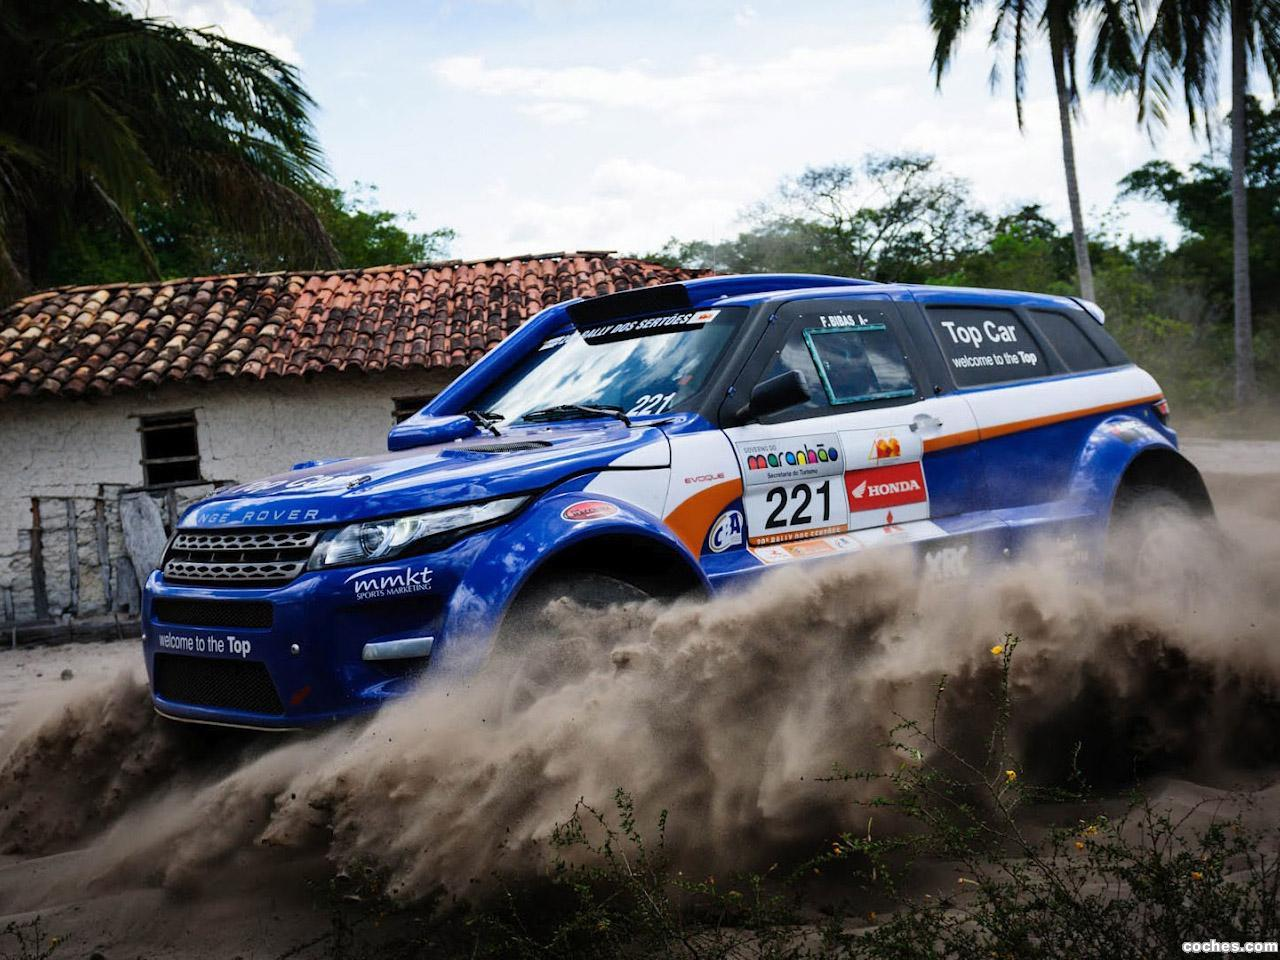 Foto 0 de Land Rover Range Rover Evoque Rally Car 2012